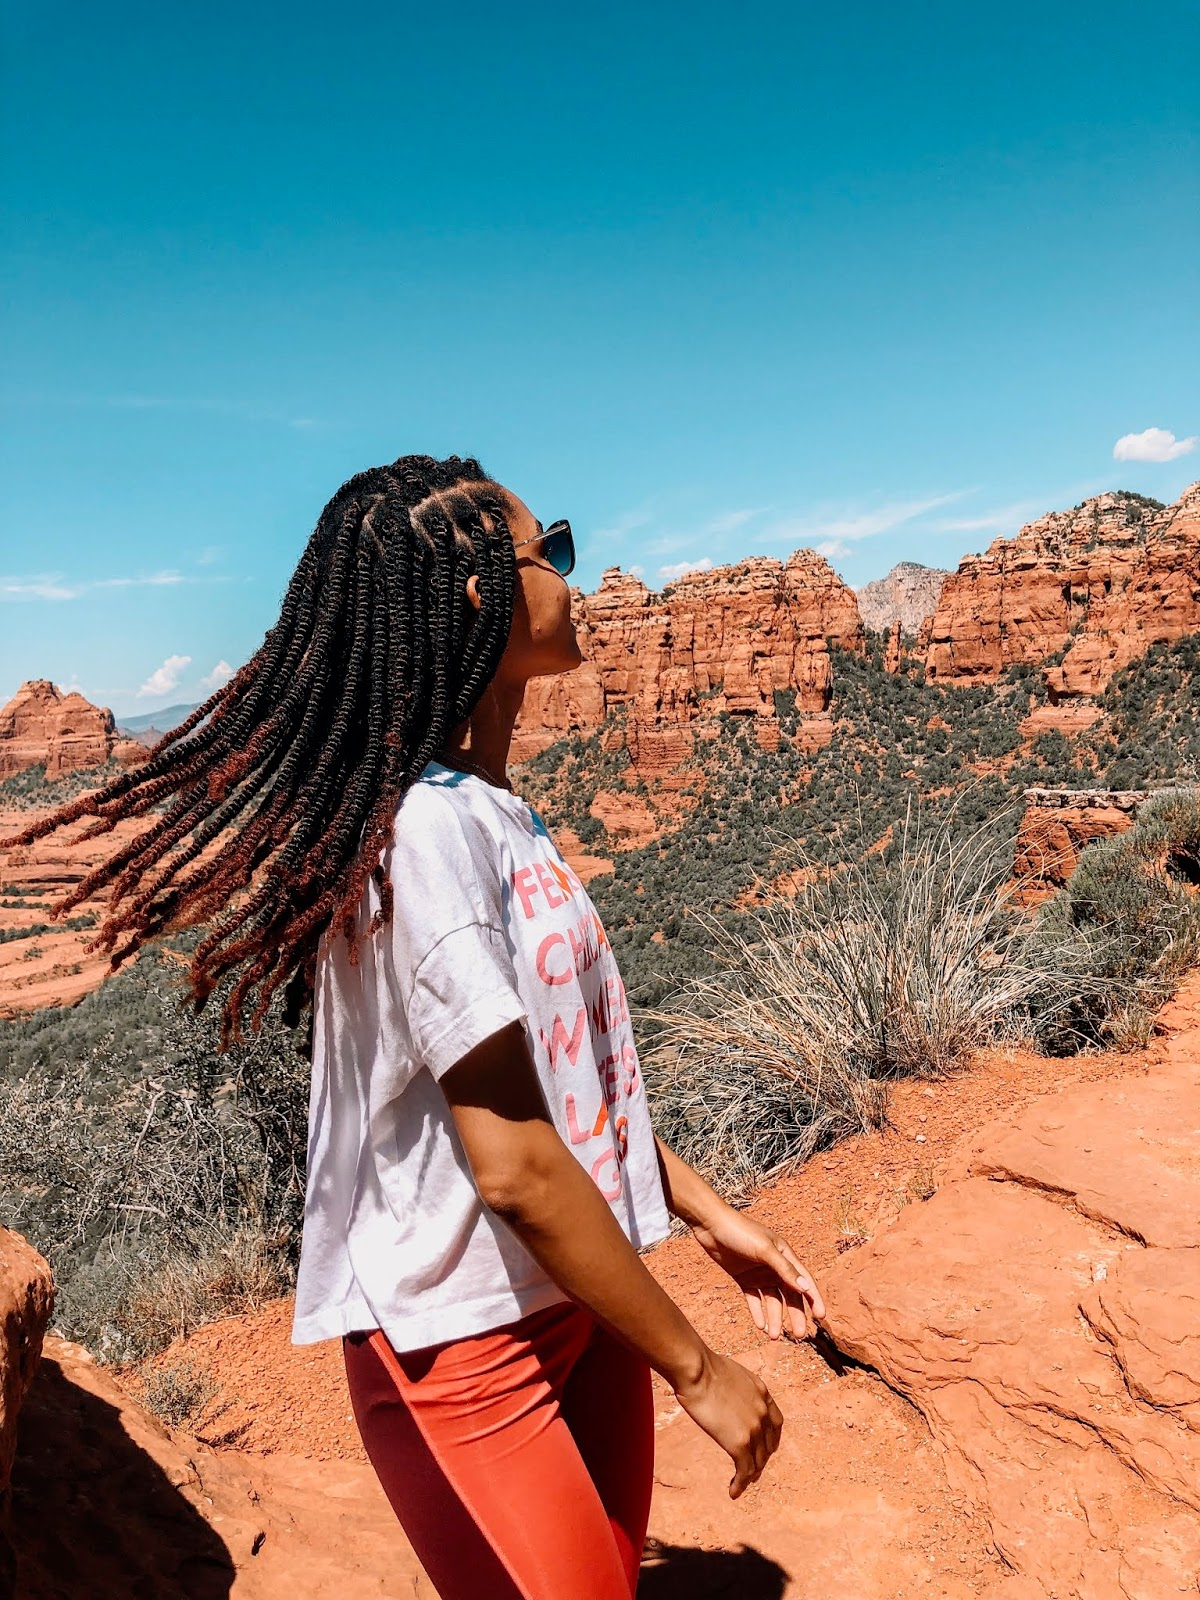 Hair Flip during Jeep Tour Marley Twists with Hiking Outfit from Nike